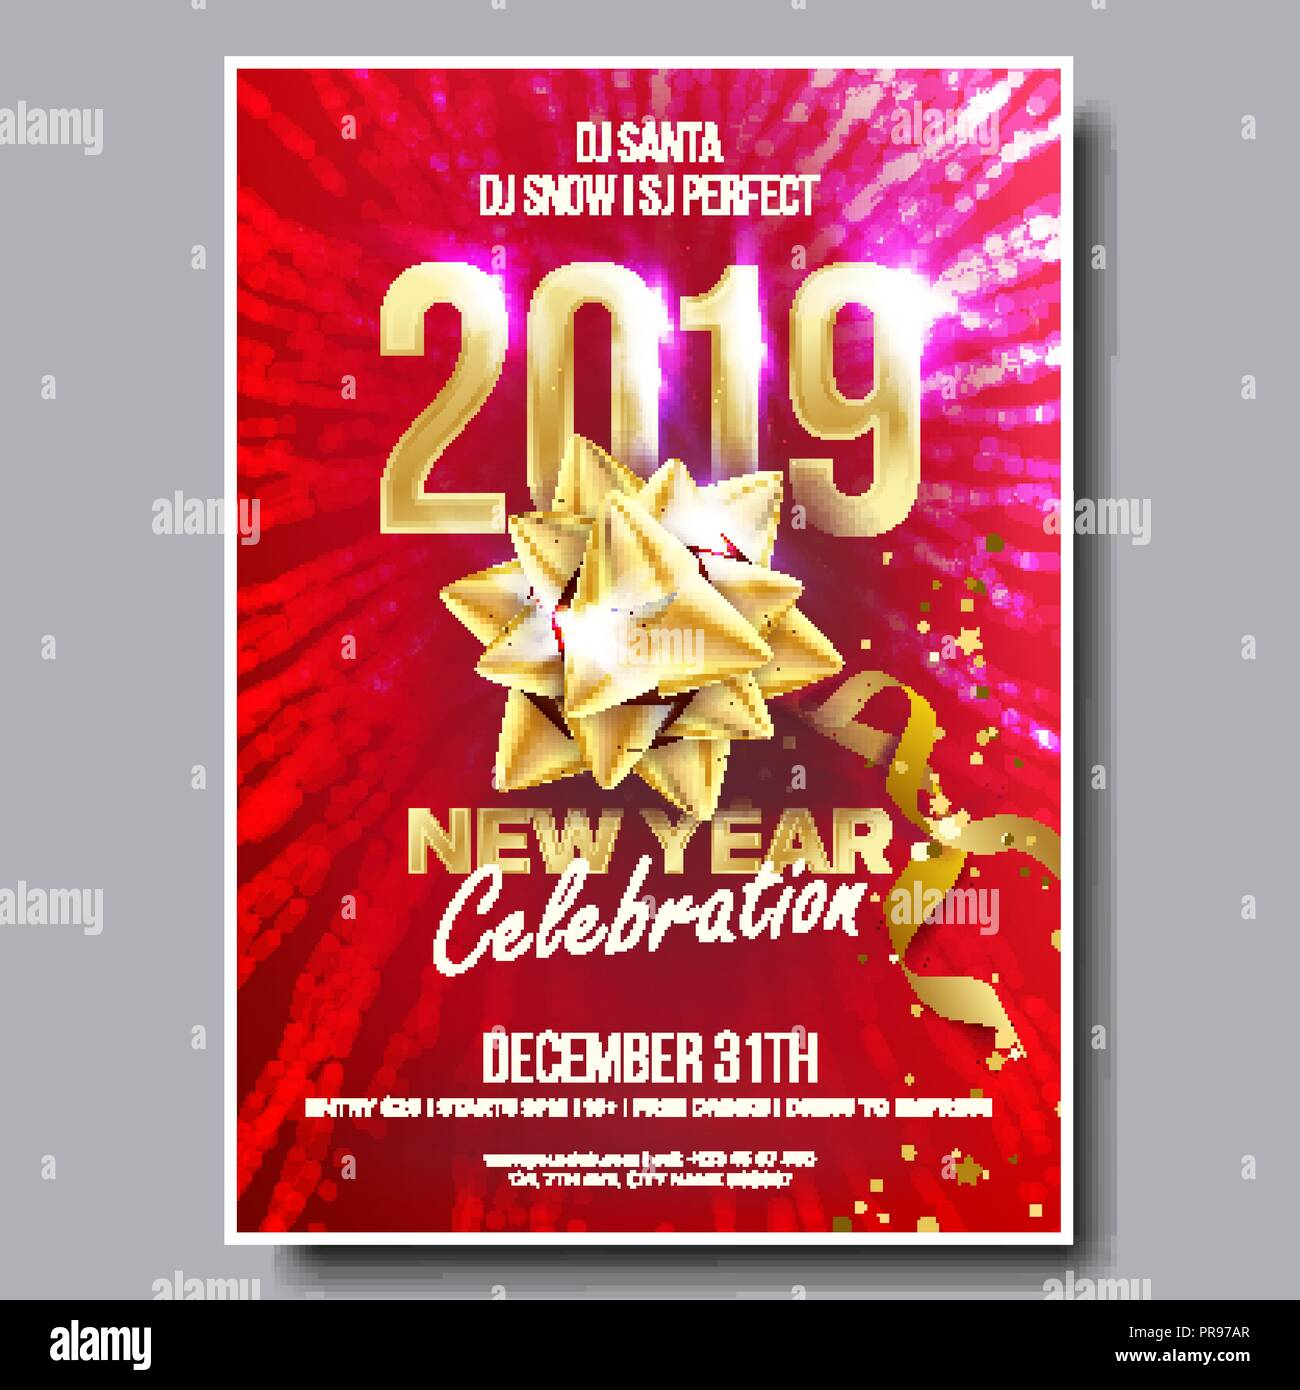 happy new year celebration template winter background design illustration